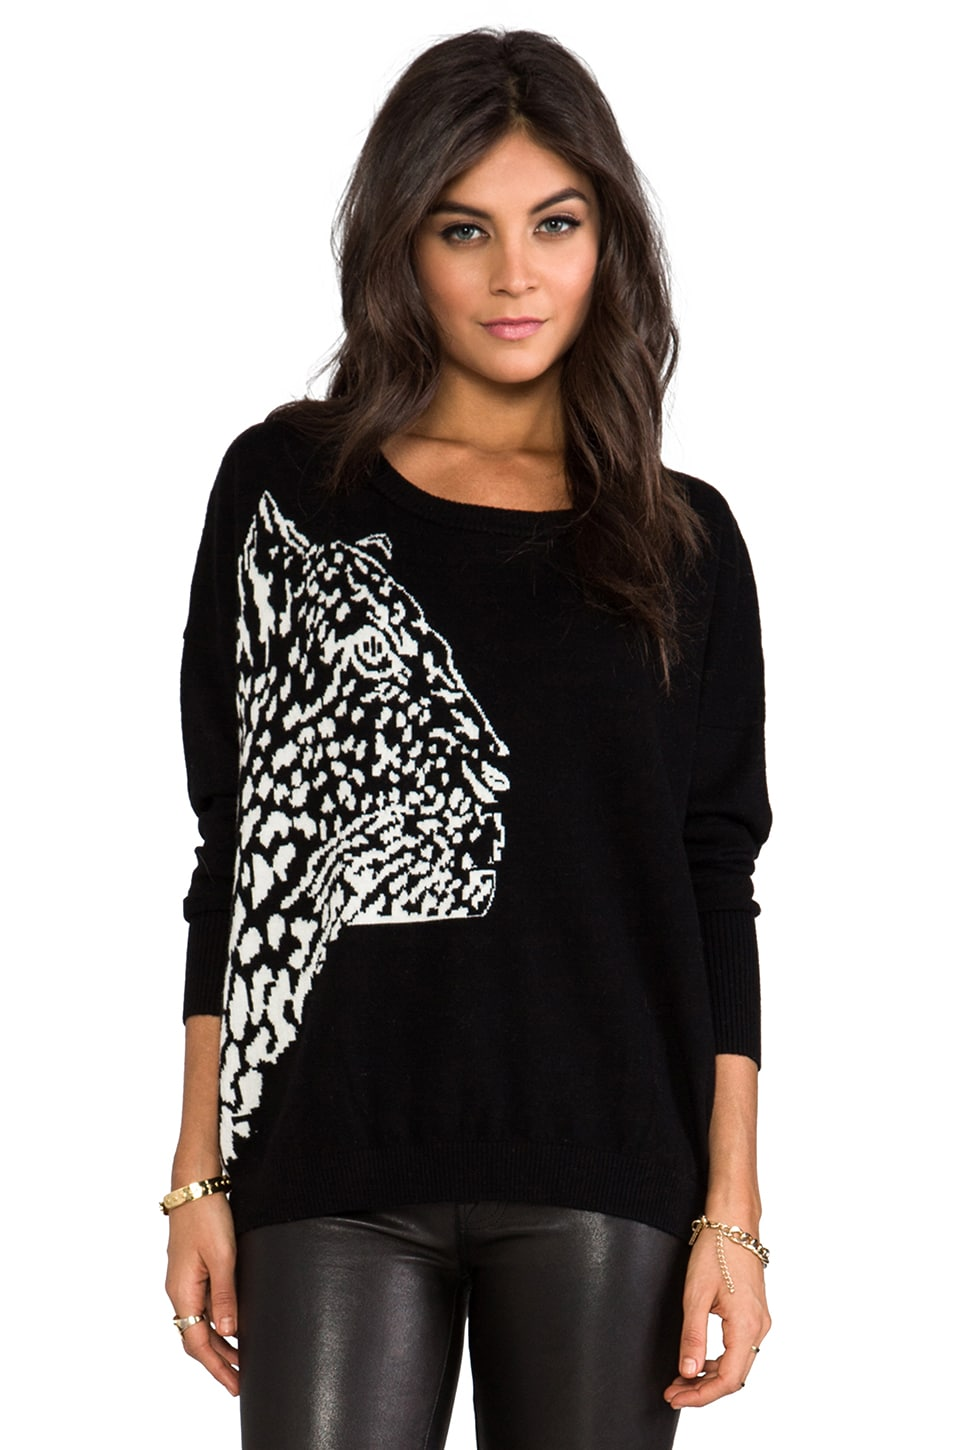 MILLY Cheetah Intarsia Sweater in Black/Ecru